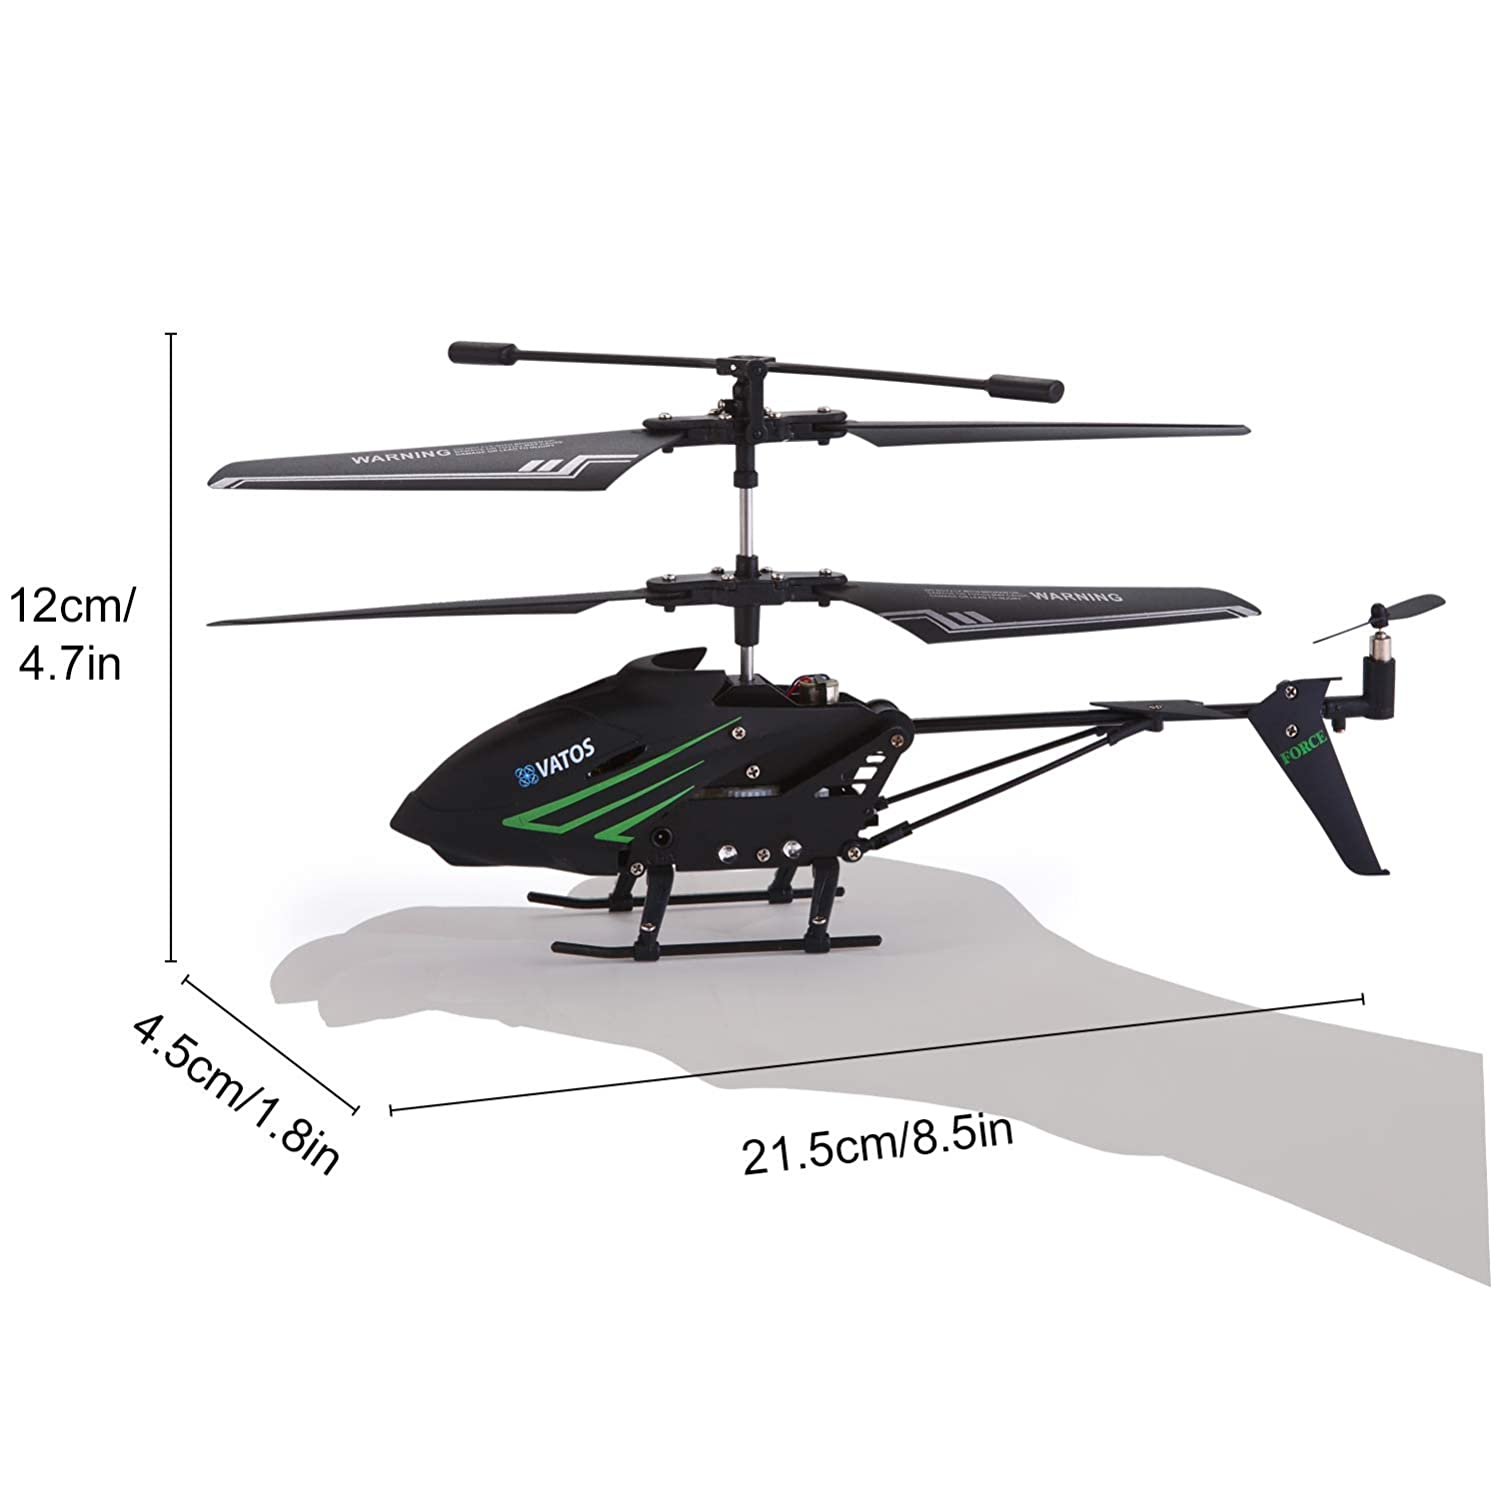 Best Remote Control Helicopter For 5-Year-Old